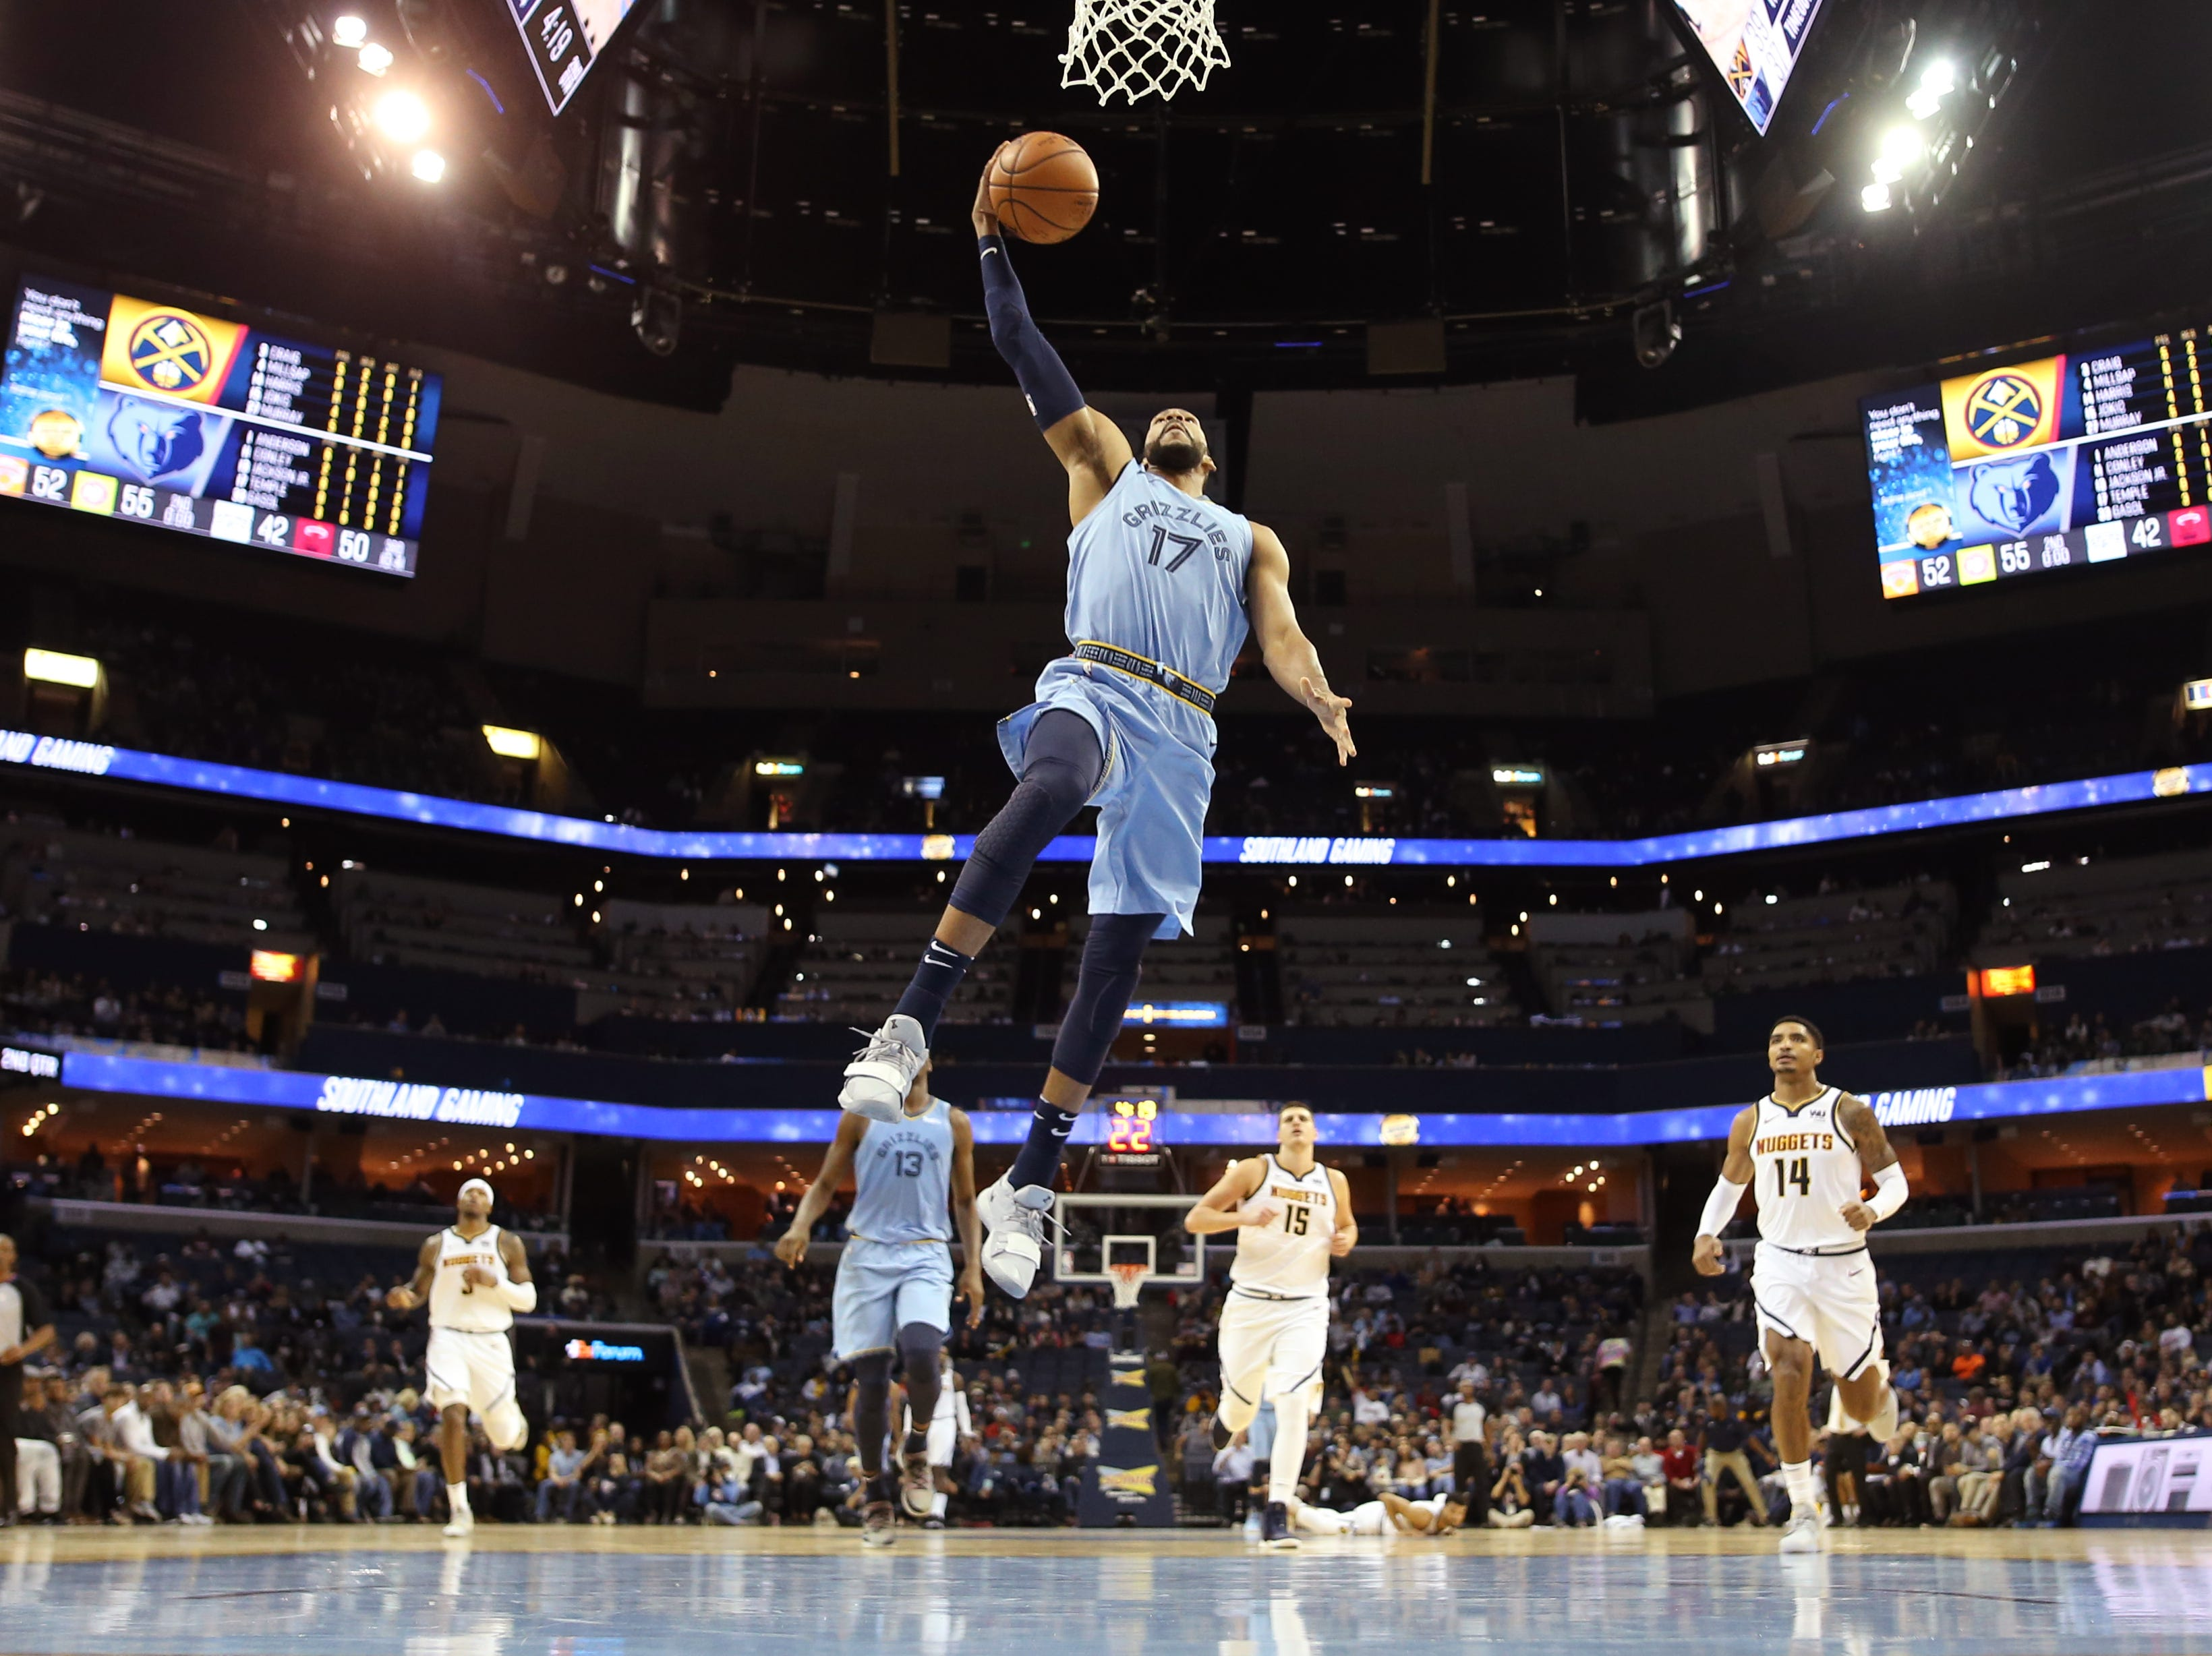 Memphis Grizzlies guard Garrett Temple dunks the ball on a fast break against the Denver Nuggets during their game at the FedExForum on Wednesday, November 7, 2018.